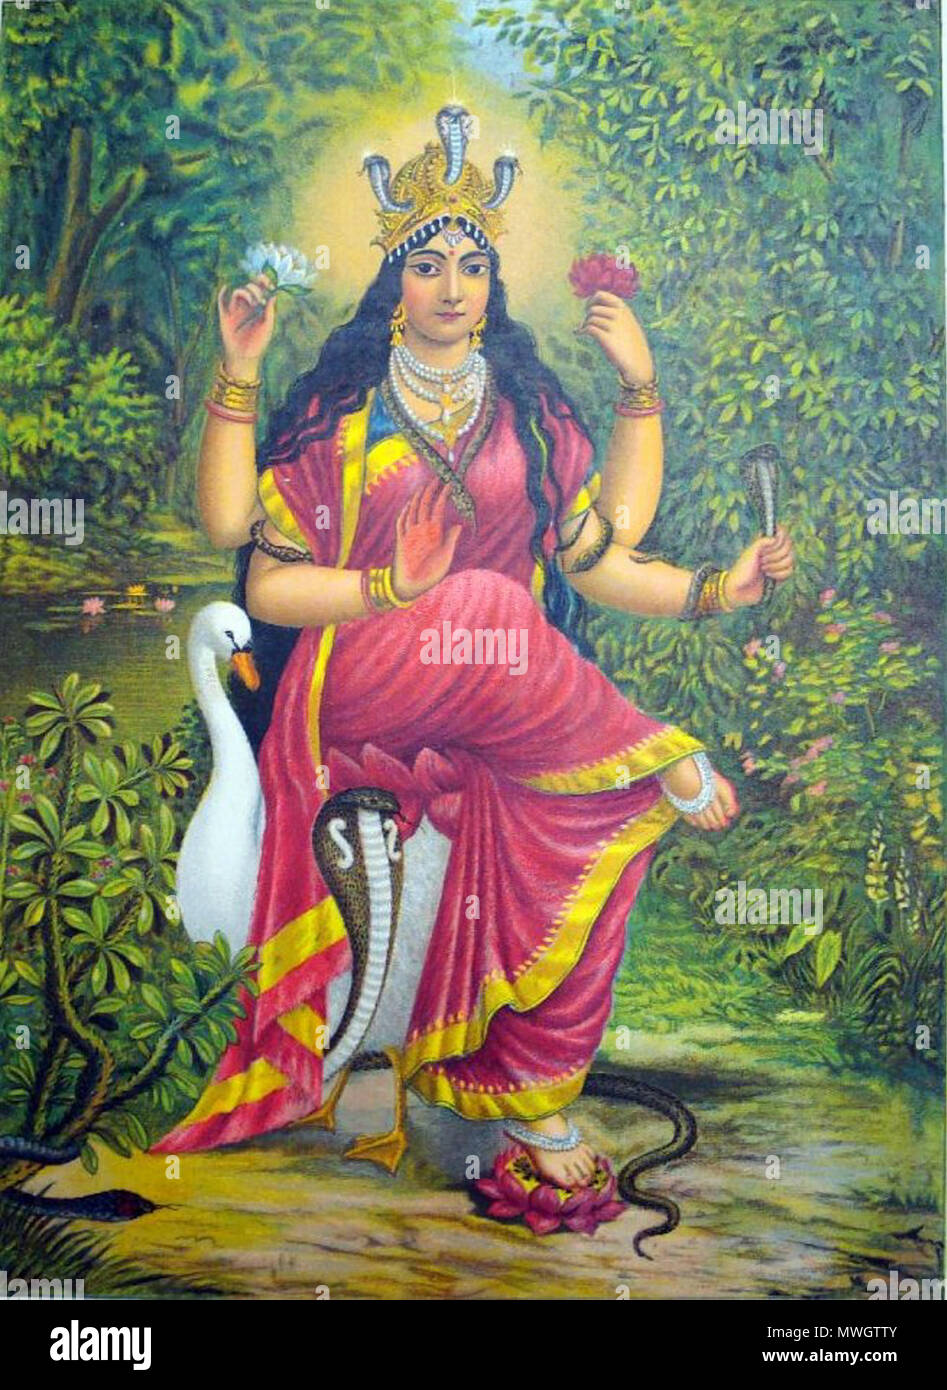 . English: 'Album of popular prints mounted on cloth pages. Colour lithograph, lettered, inscribed and numbered 33. The goddess Manasā in a dense jungle landscape with snakes, seated on a swan and with her left foot resting on a lotus flower.' . 1895. Unknown 390 Manasa Devi - Stock Image